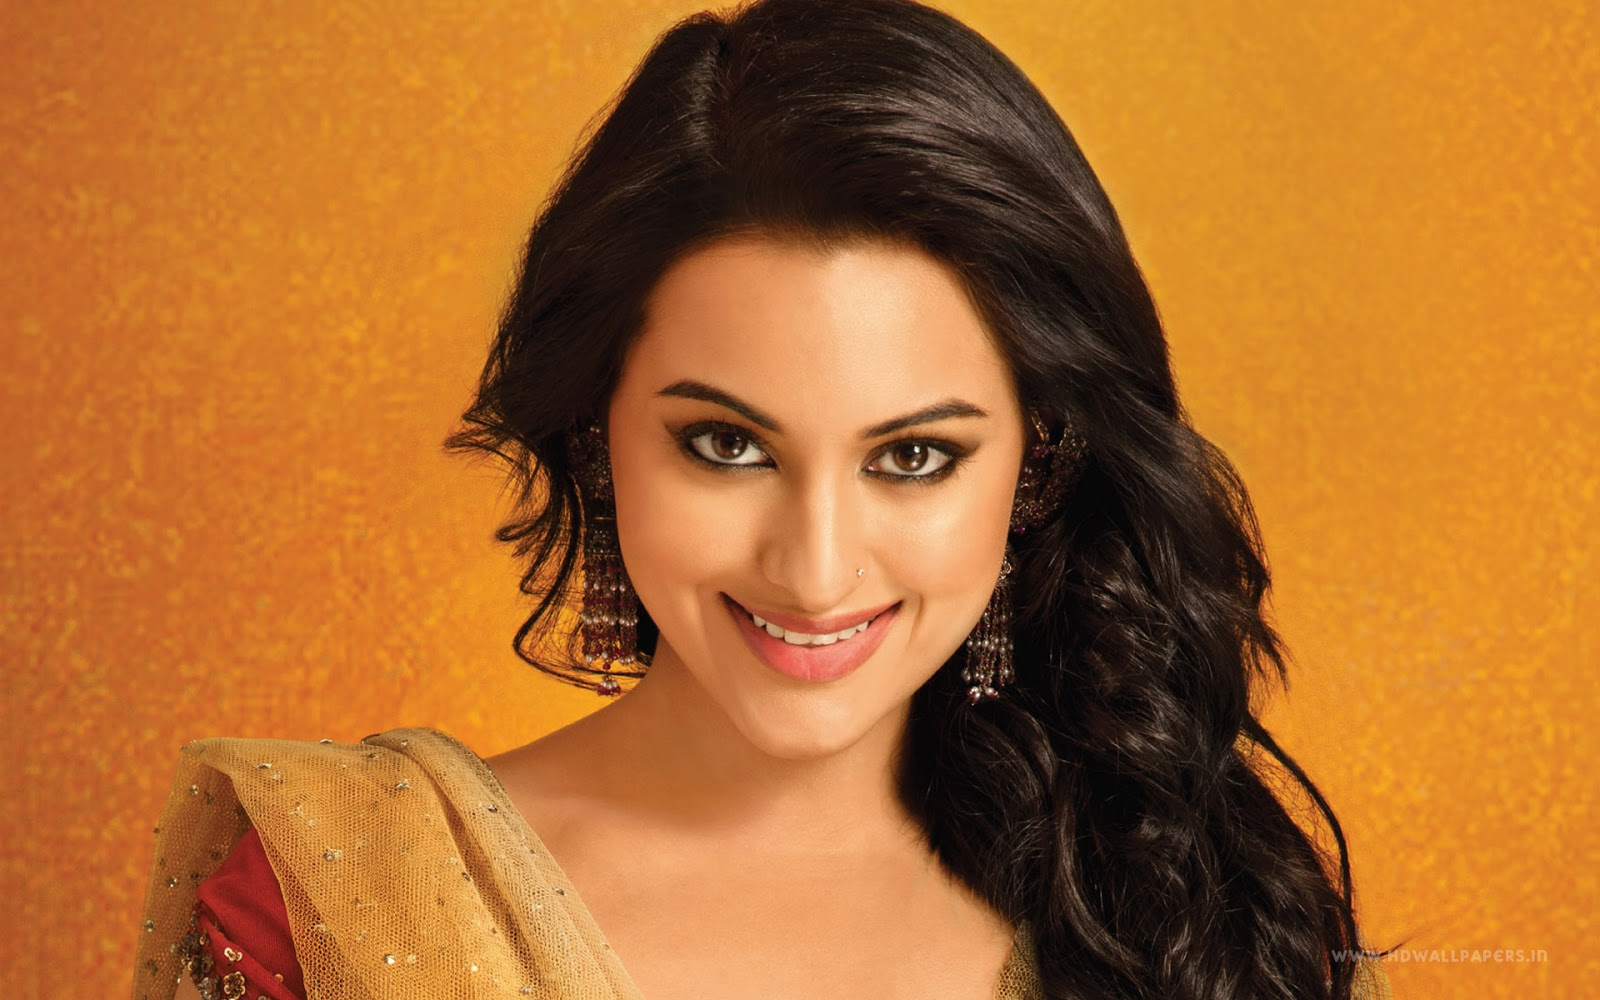 sonakshi sinha 30 best looking photos in hd - indian celebrities hd